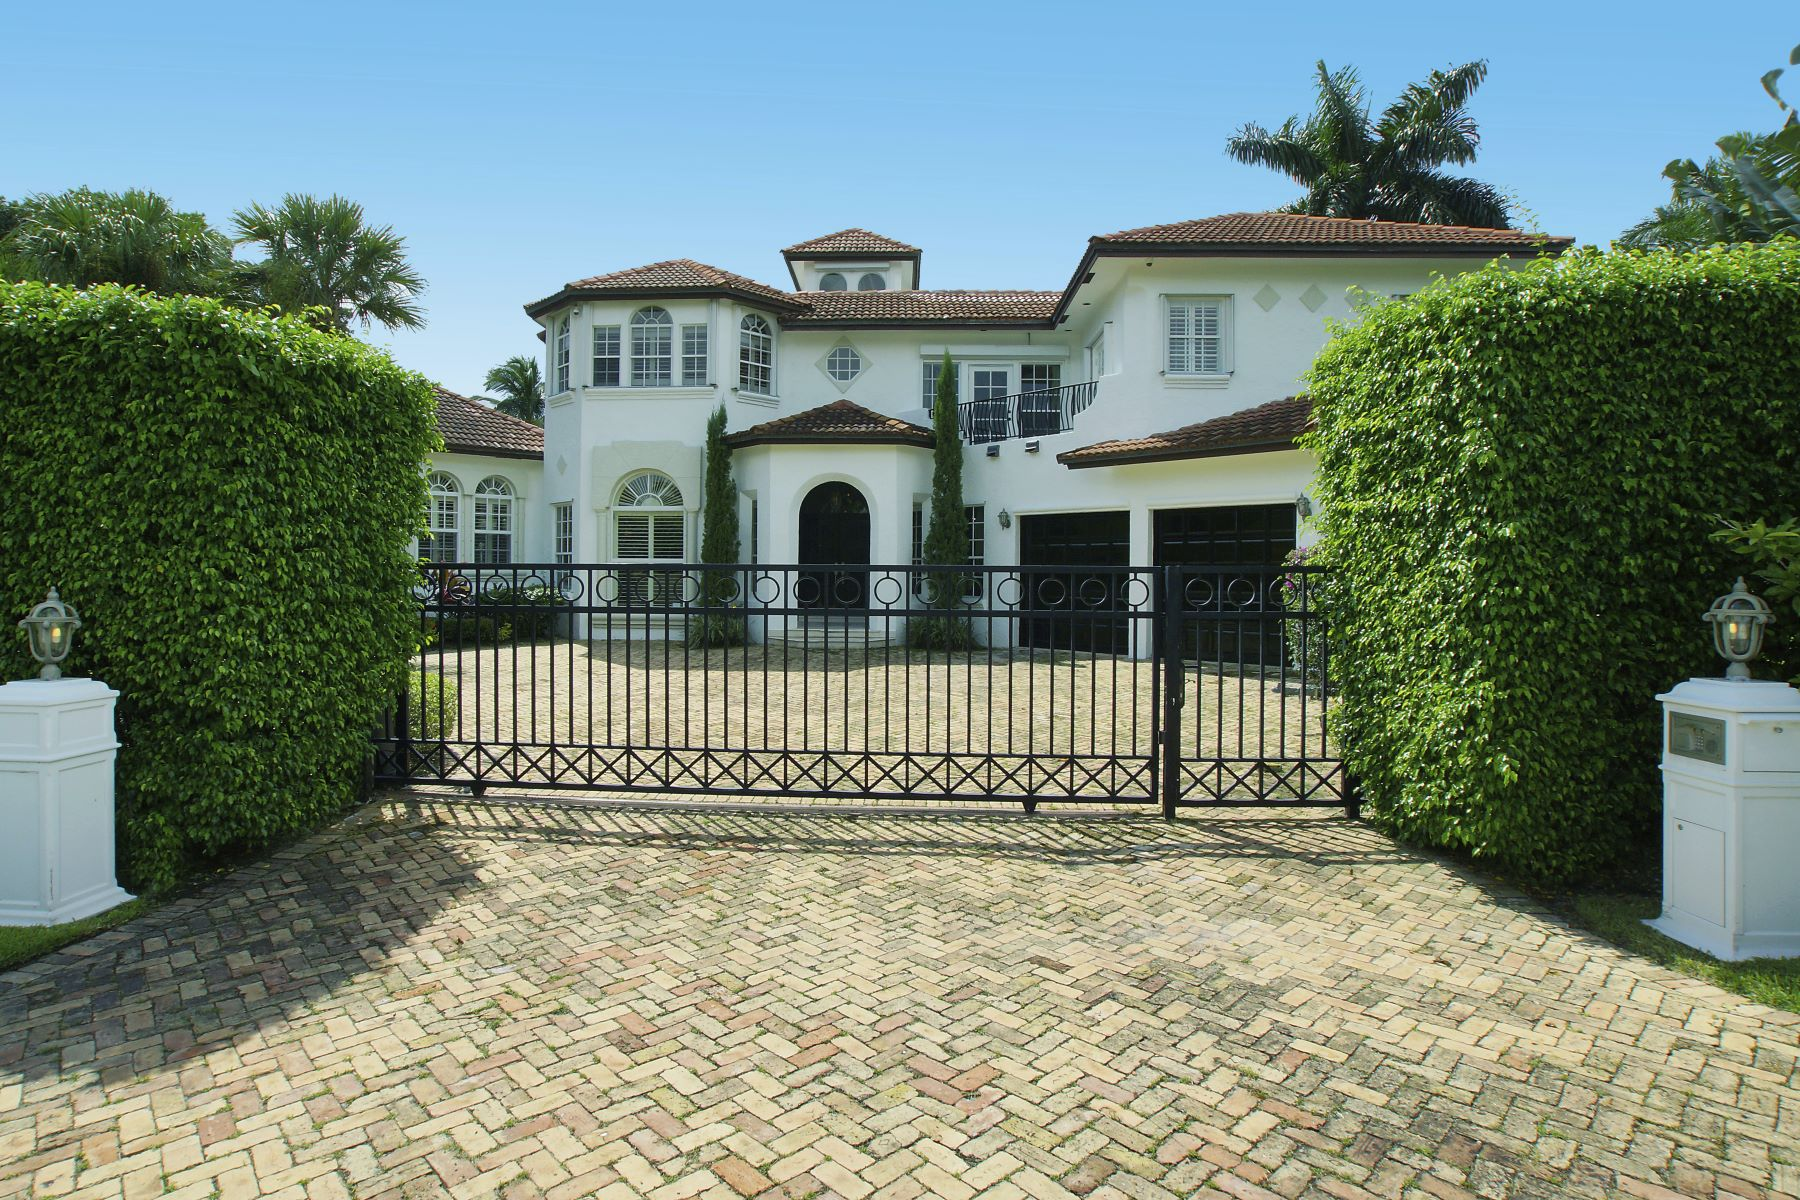 Single Family Home for Sale at 2420 Sea Island Dr 2420 Sea Island Dr Fort Lauderdale, Florida 33301 United States